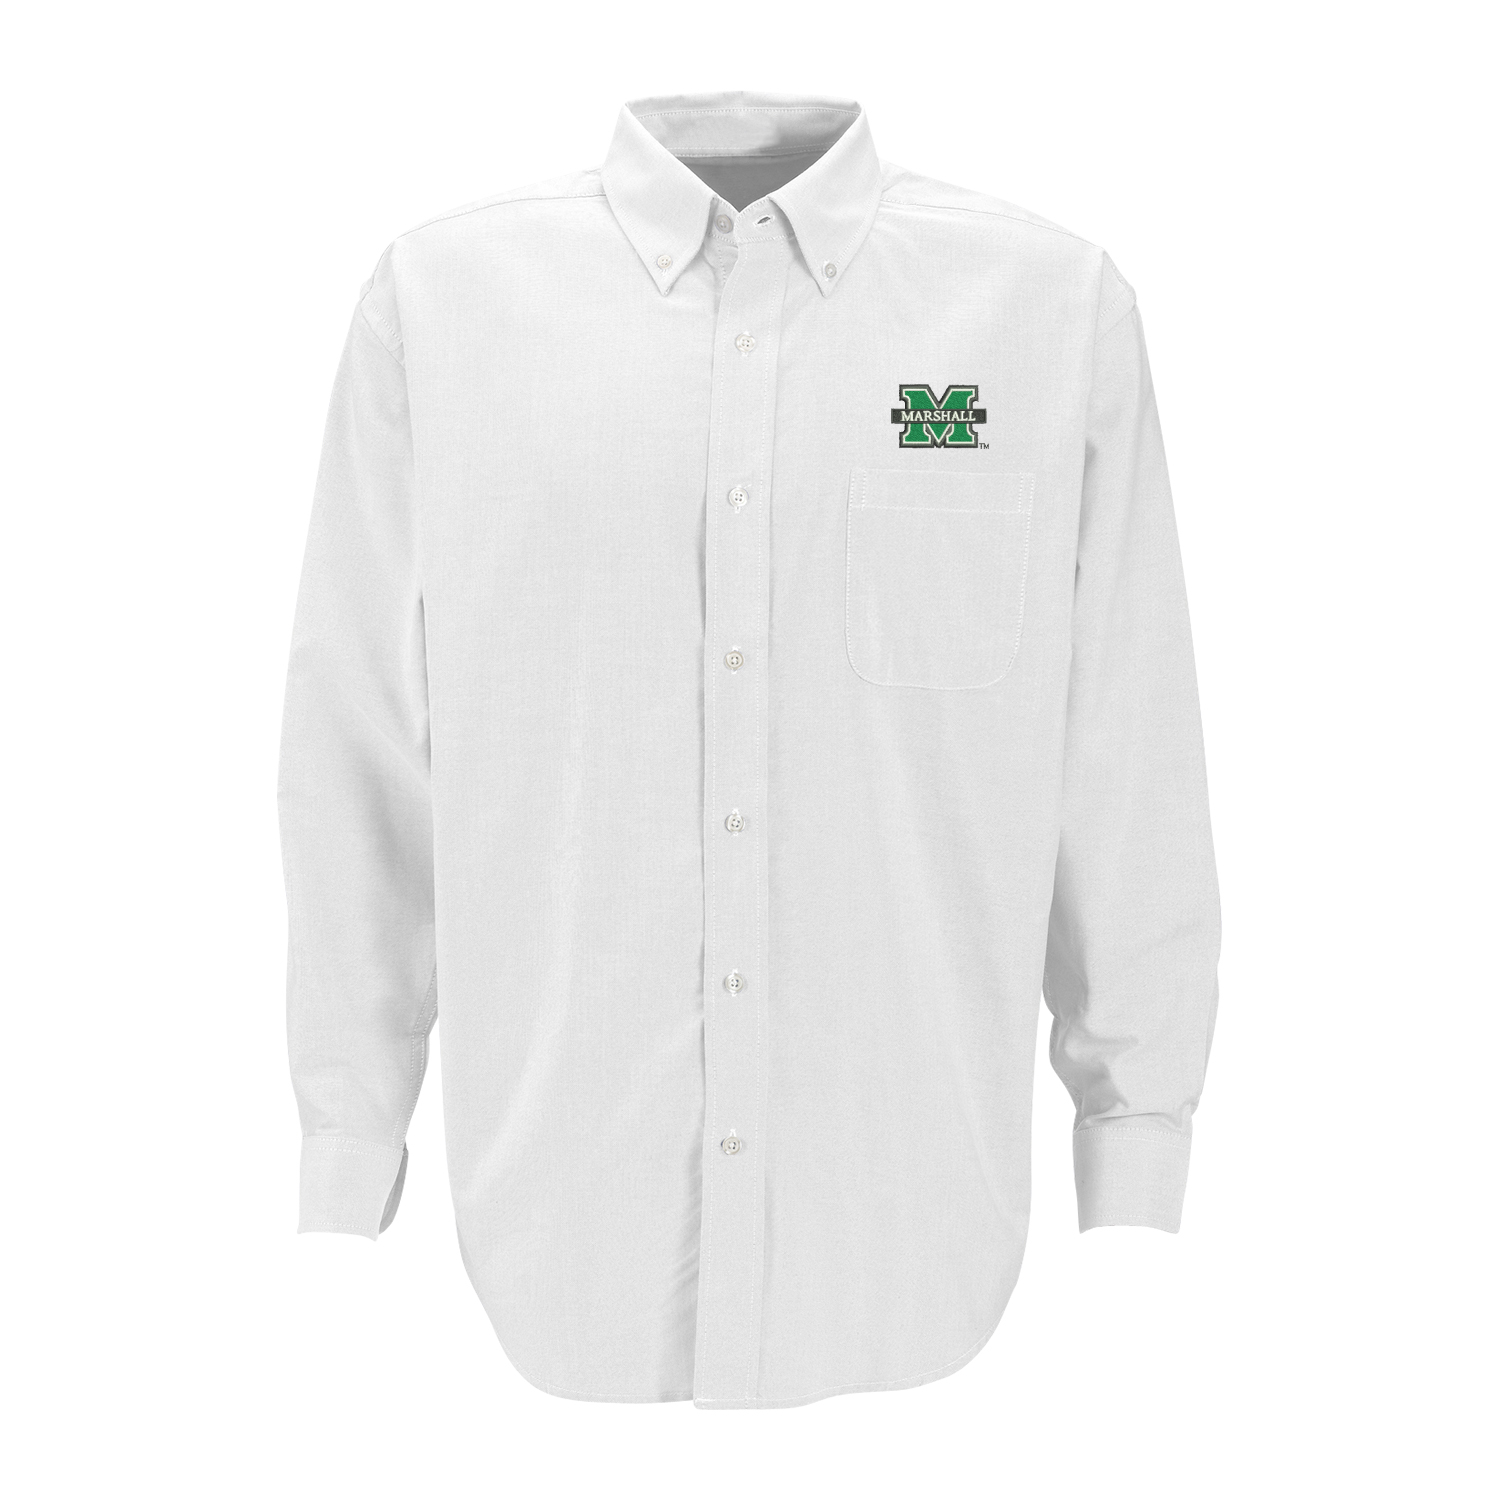 9435WH <bR>MU Oxford Dress Shirt <br>$47.99